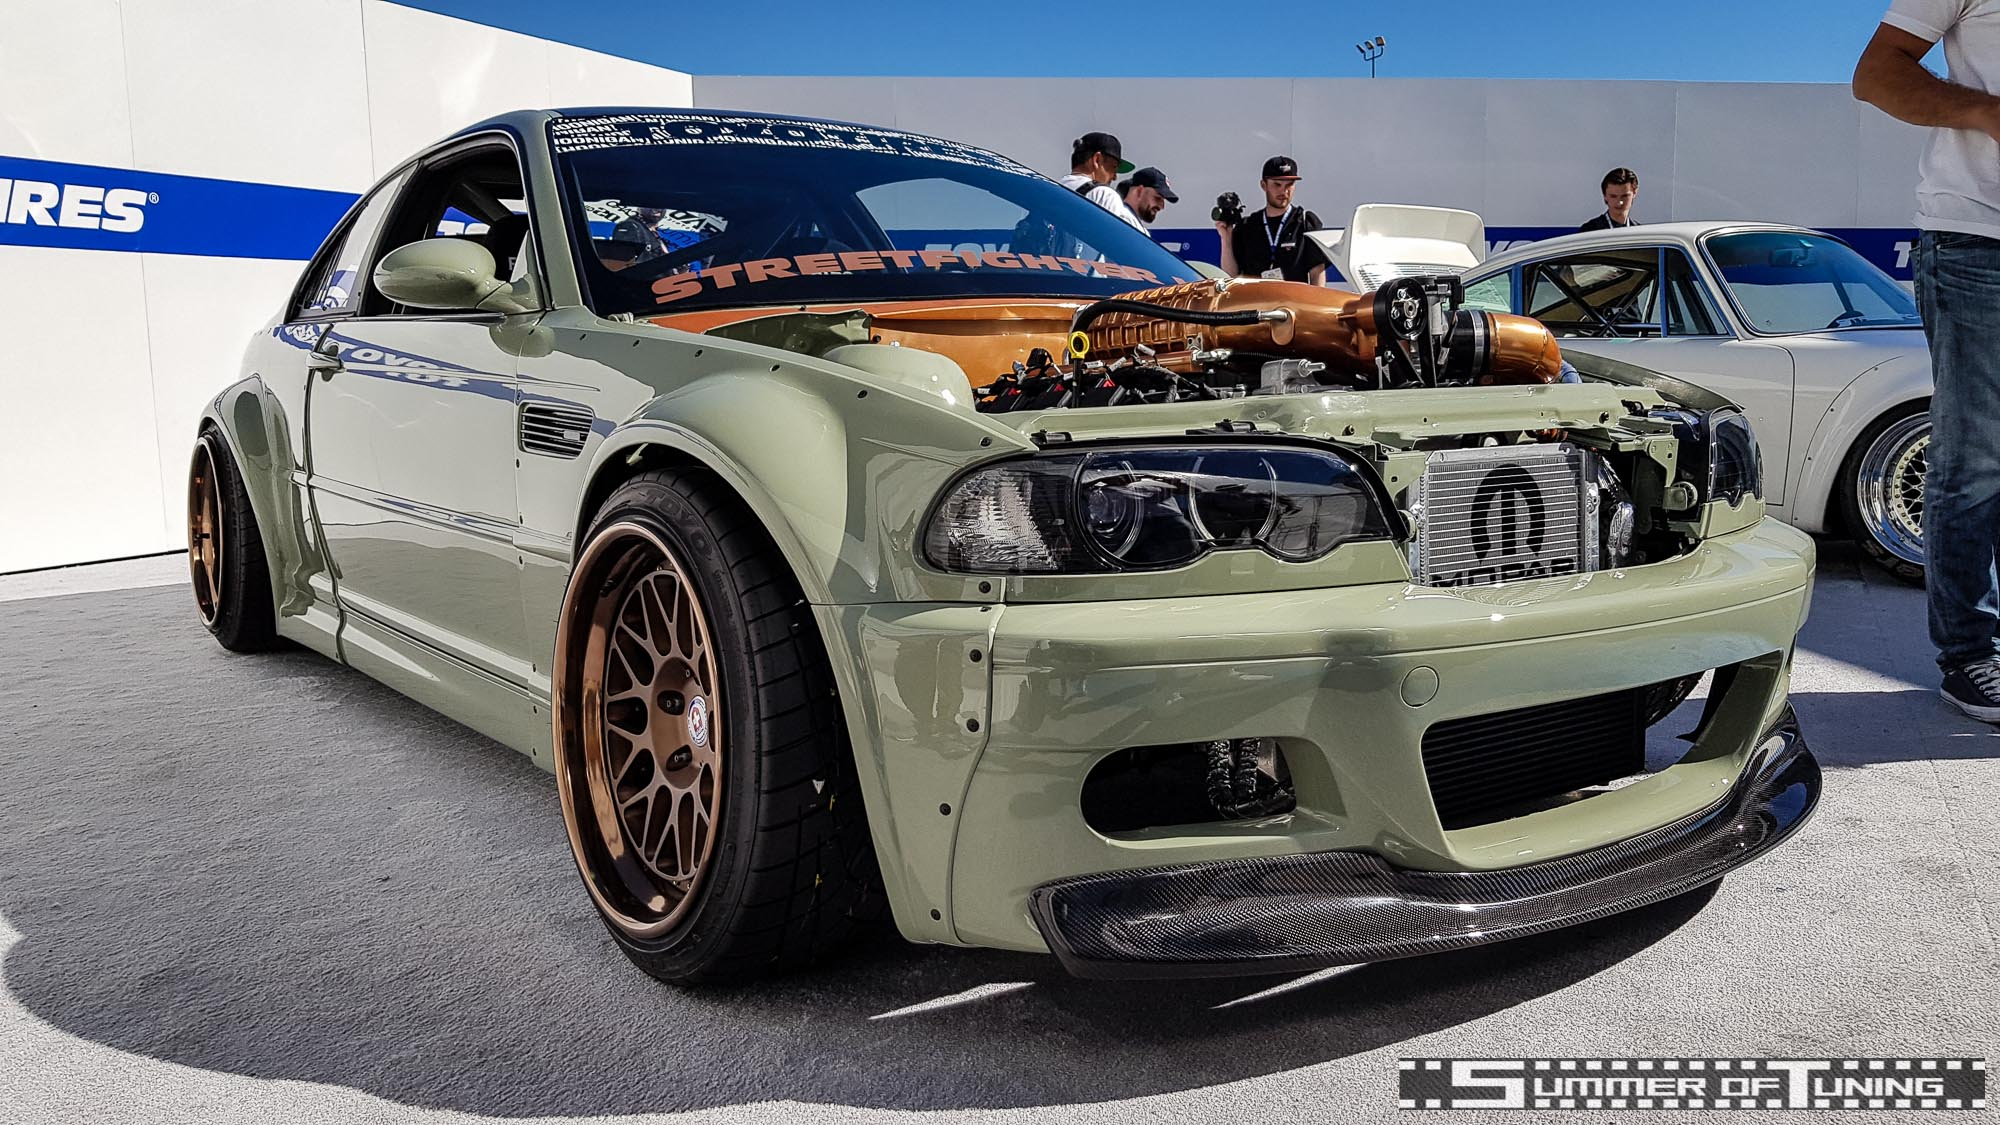 BMW E46 Mopar-Swap